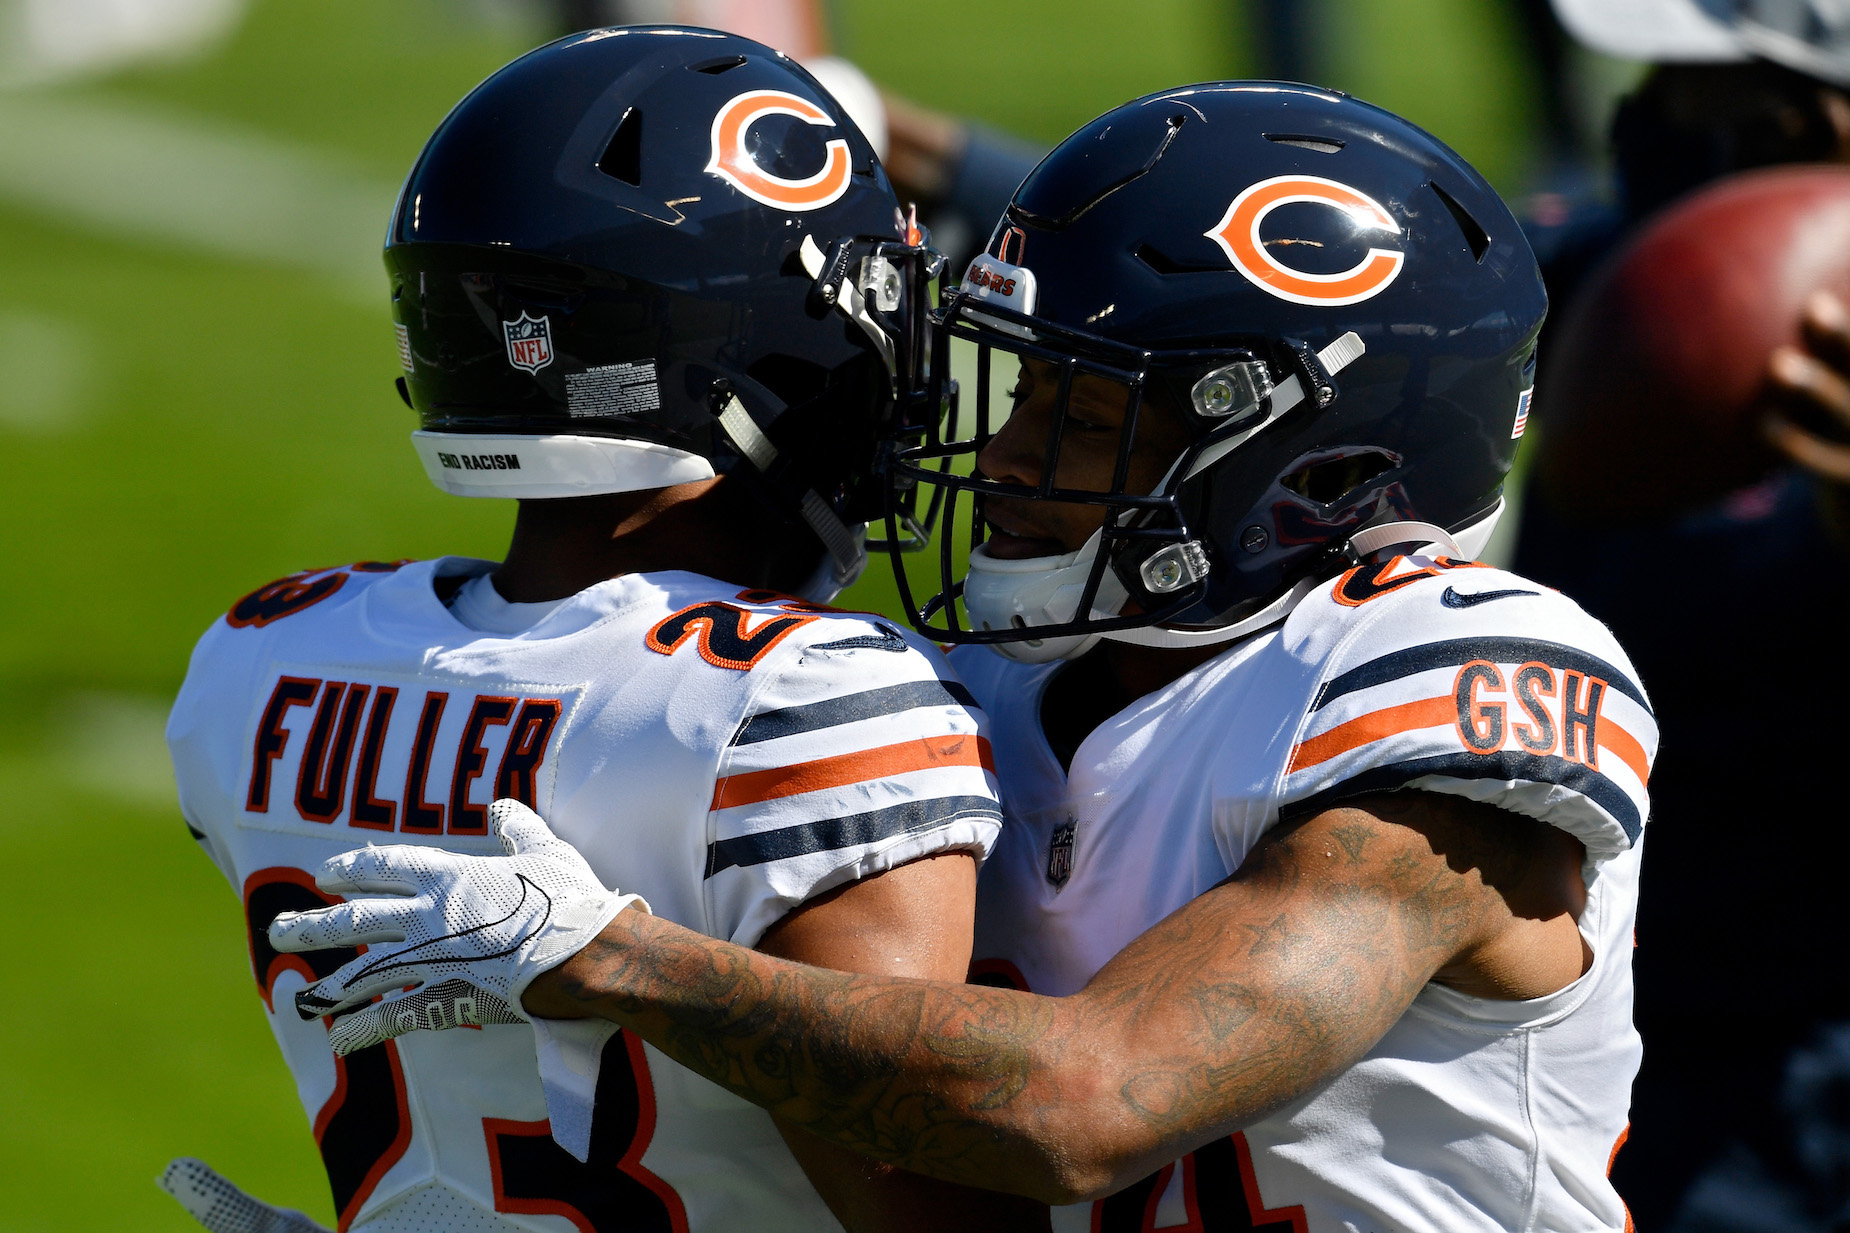 Why do the Chicago Bears wear GHS on their jersey?